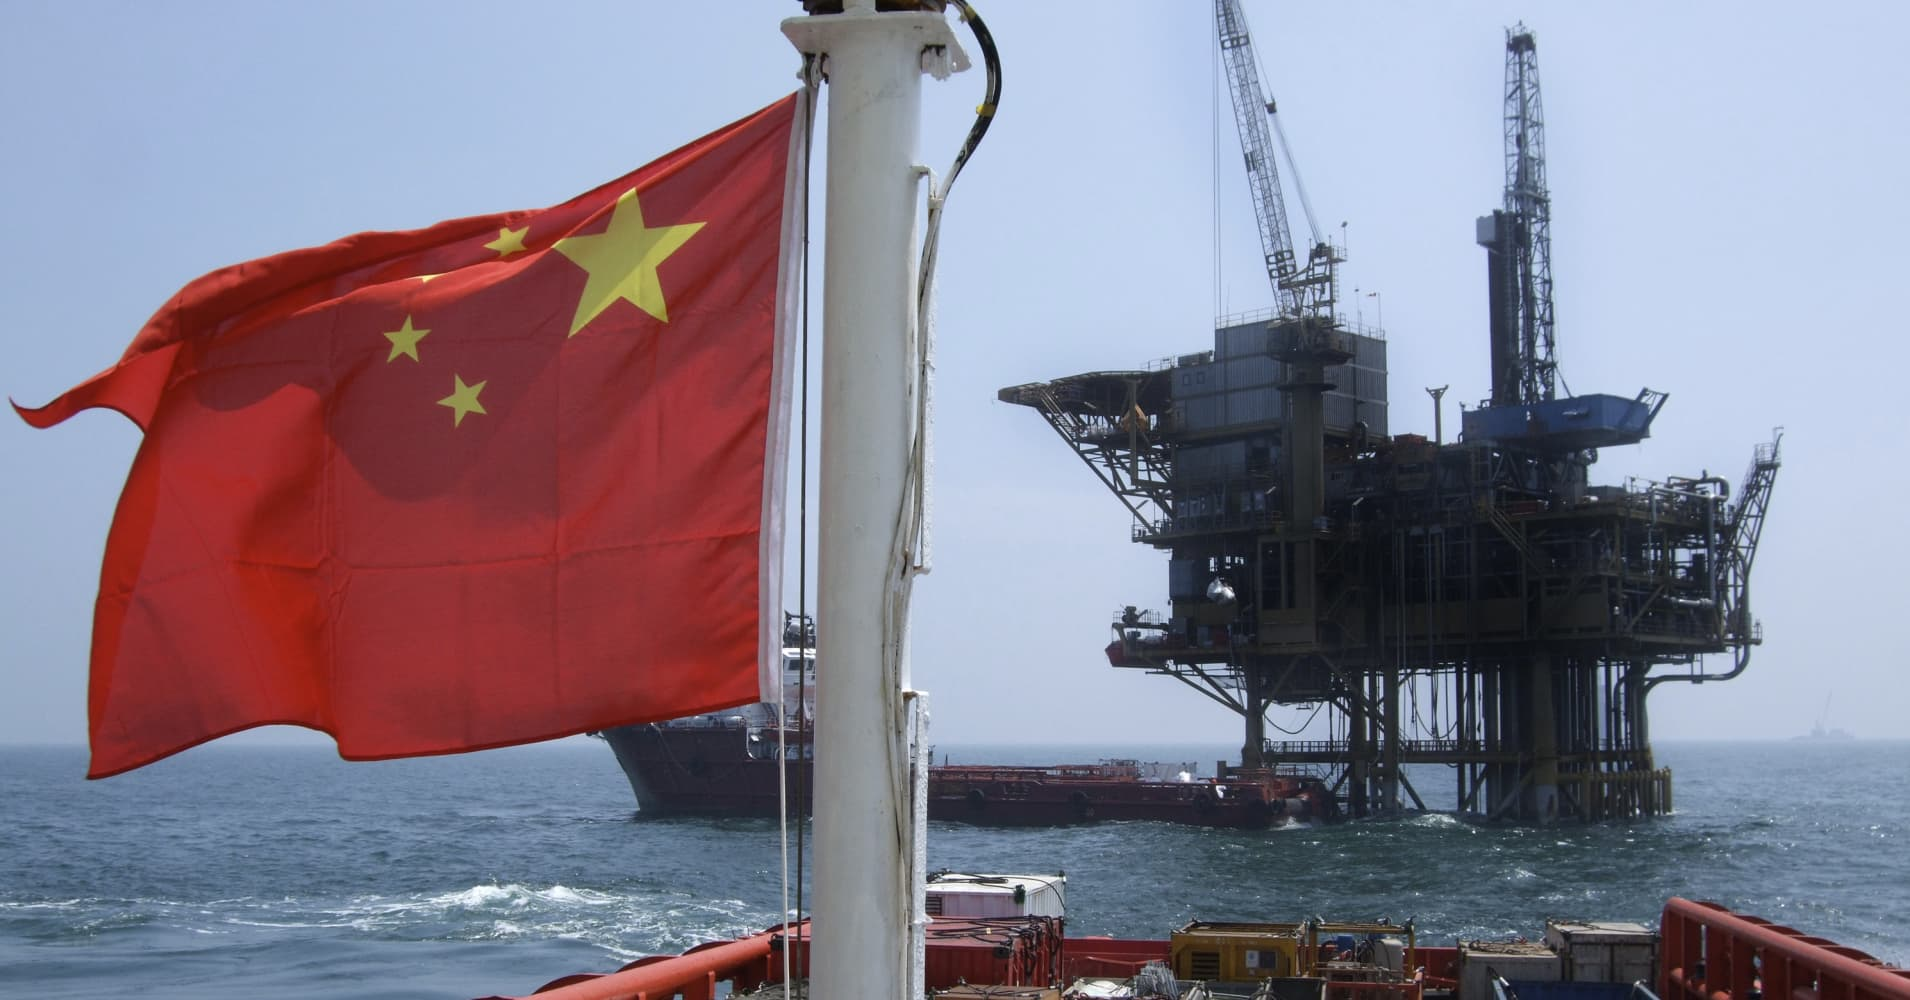 Petro-yuan: China wants to dethrone dollar, RMB-denominated oil contracts